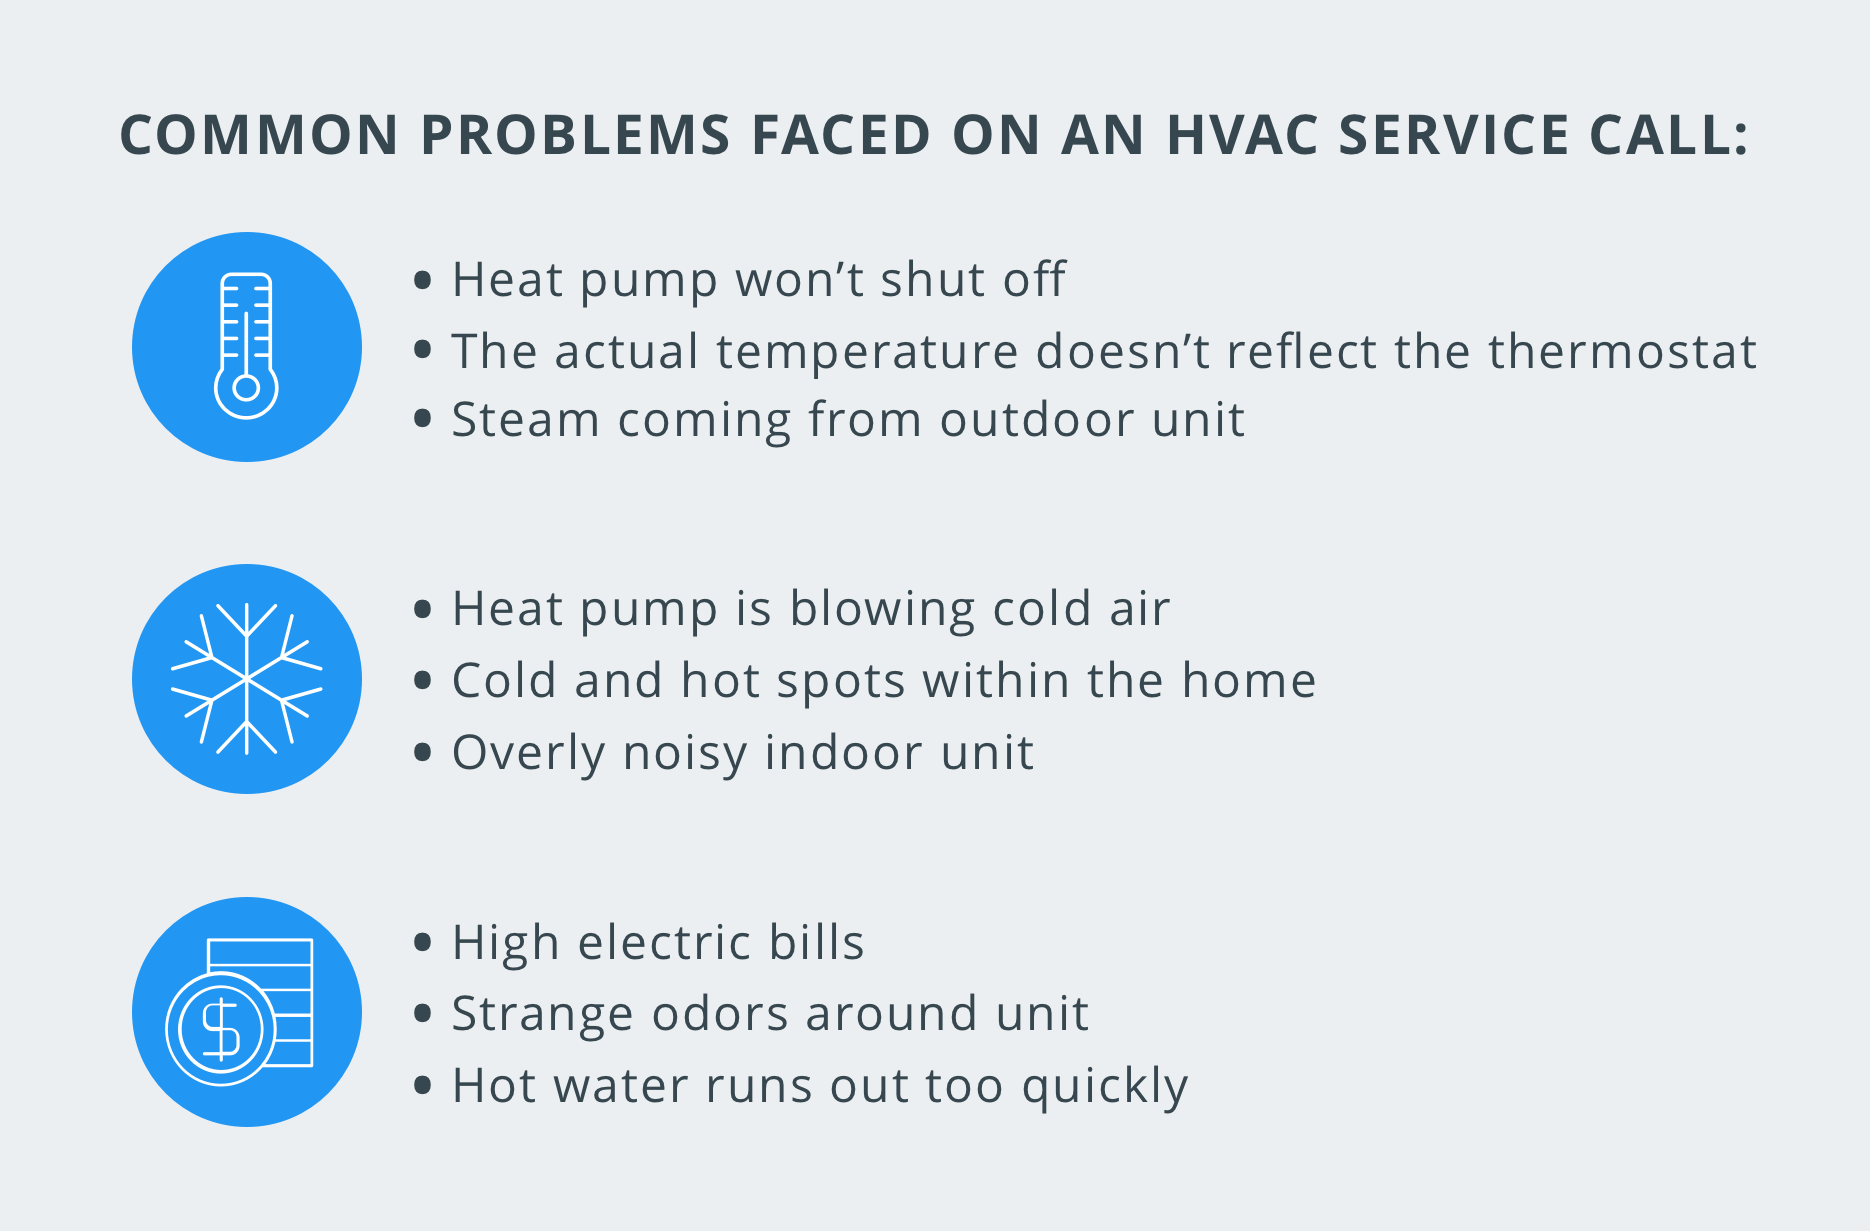 HVAC Service Call Problems_Common problems faced on an HVAC service call